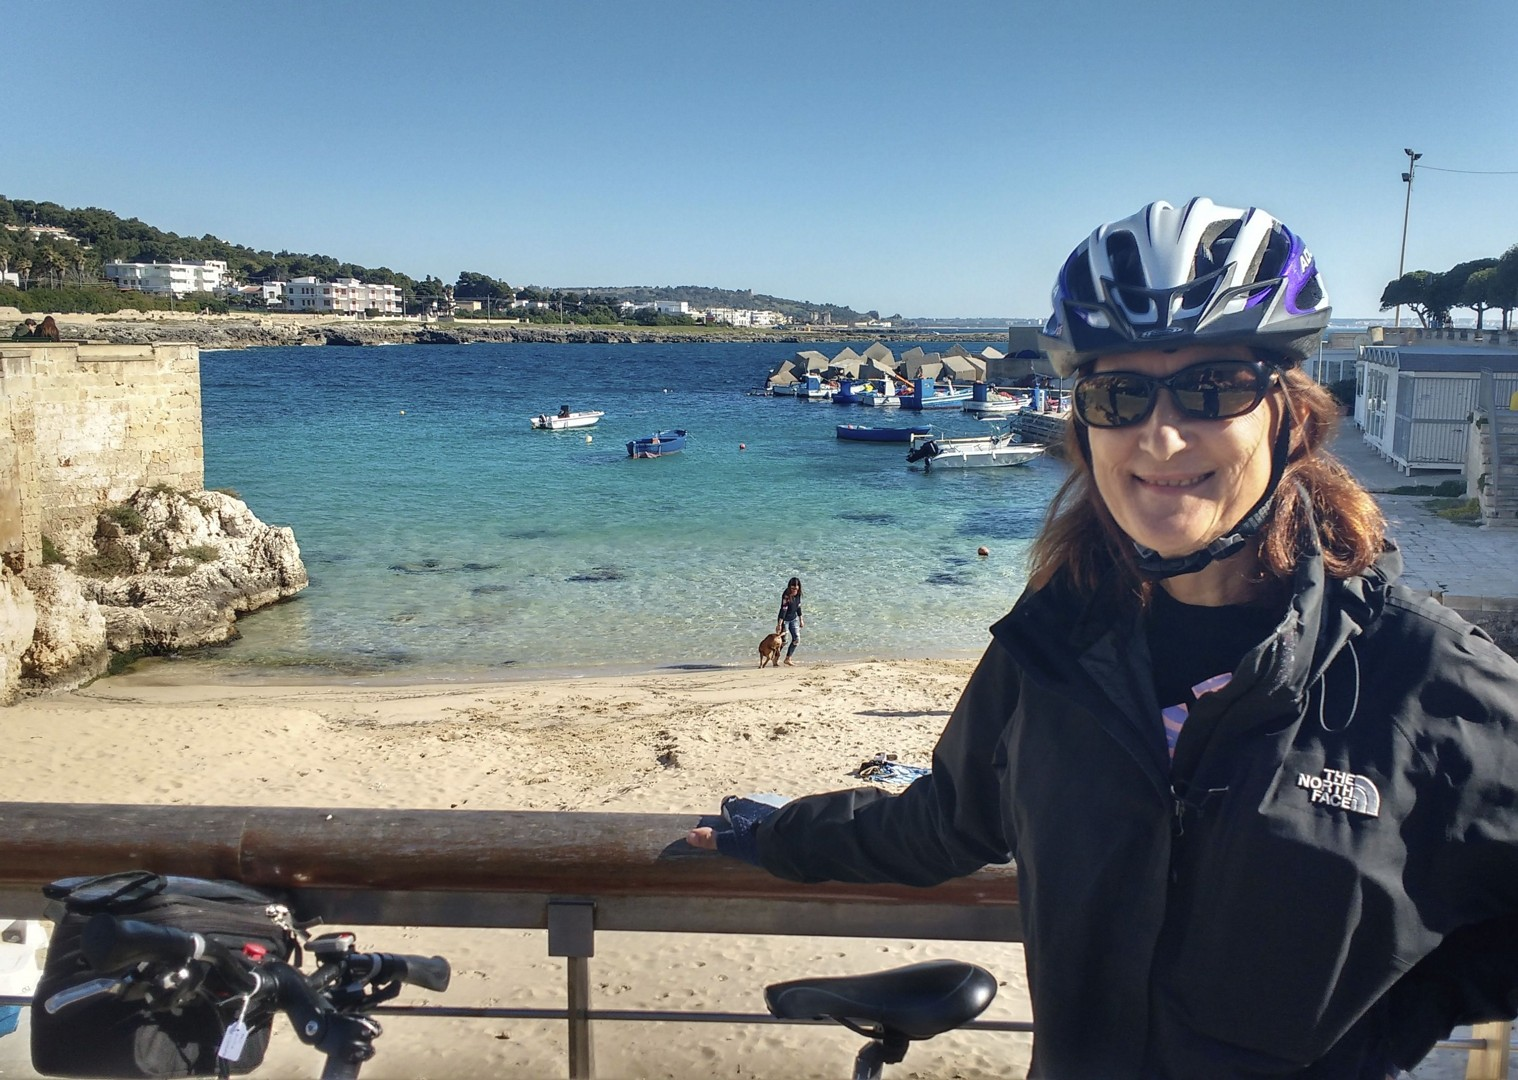 cycling-holiday-puglia-italy-coast.jpg - Italy - Puglia - Italia Leisure and Family Cycling